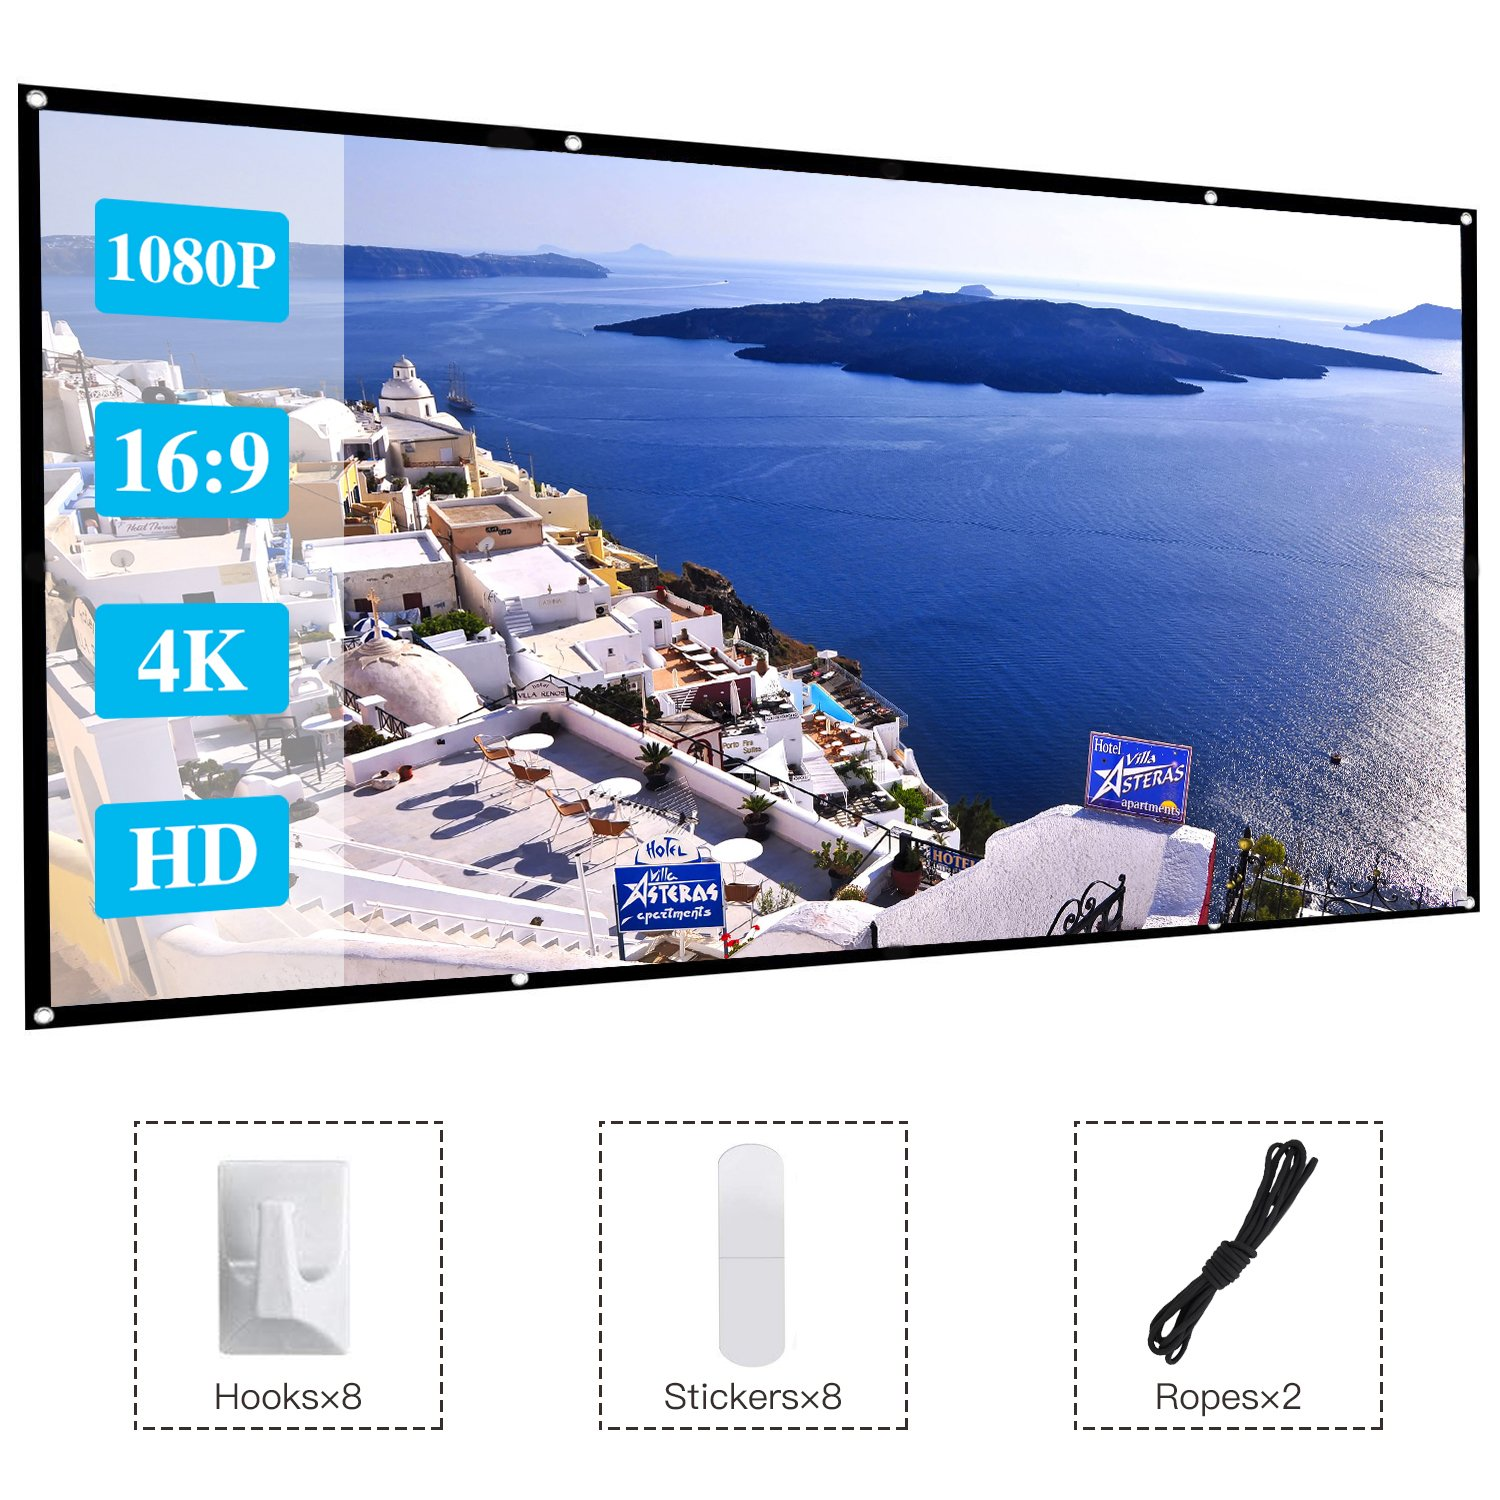 120 Inch Projector Movie Screen, ASINNO Portable Folding Indoor Outdoor 4K HD 16:9 Movie Projection Screen for Meeting/Home/Cinema/Theater /Presentation by ASINNO